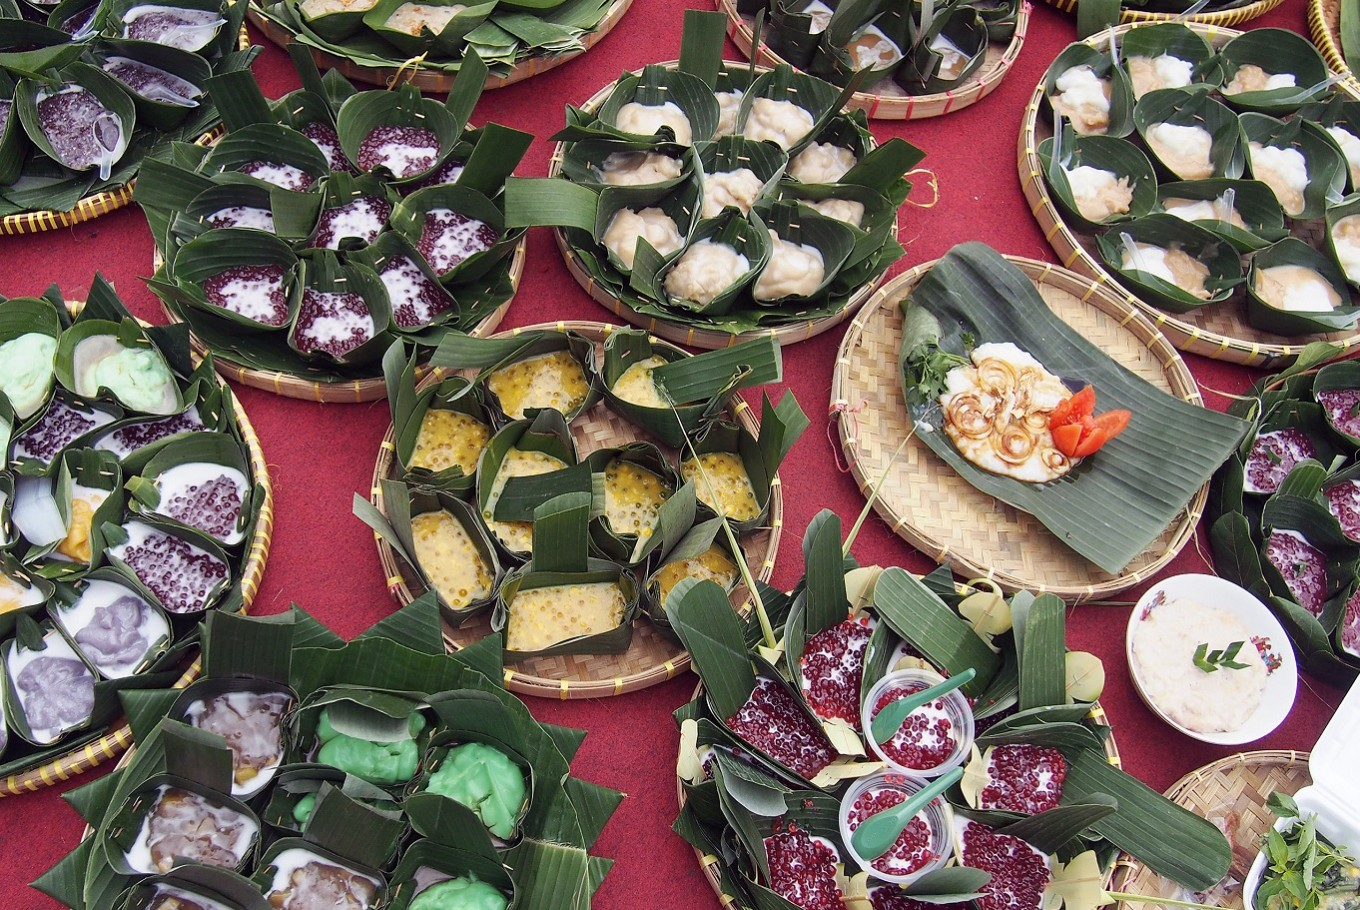 Served warm: As many as 150 varieties of jenang were presented during the Jenang Festival in Ngarsopuro district, Surakarta, Central Java, on Friday.